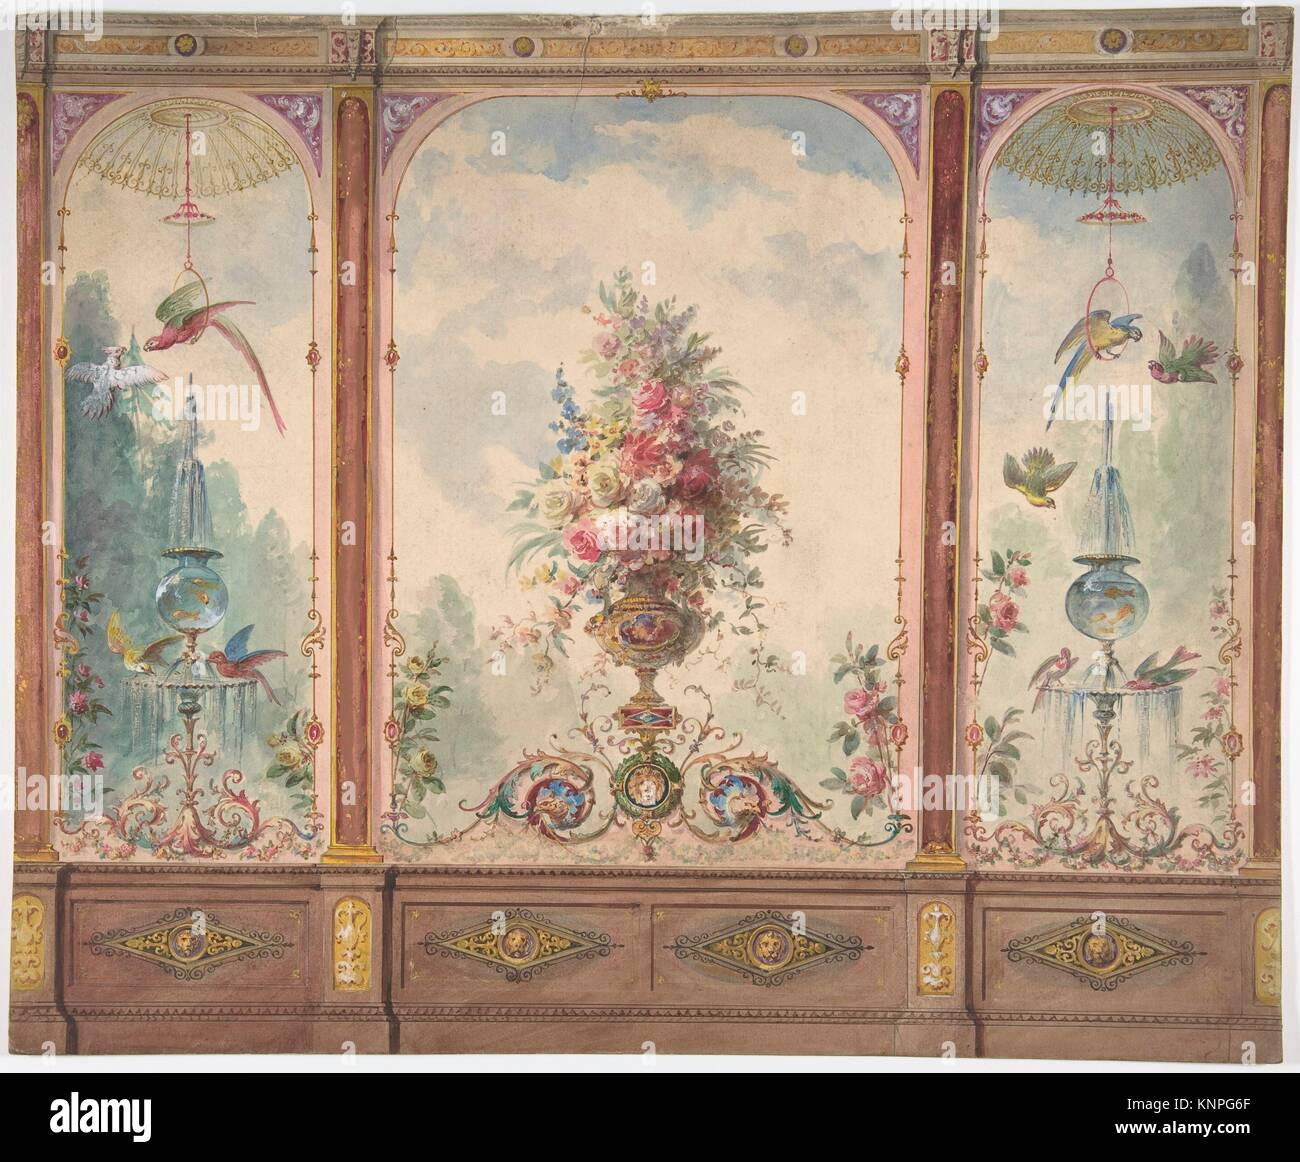 Alamy & Design for a Wall with a Flower Vase Birds Two Gold Fish ...